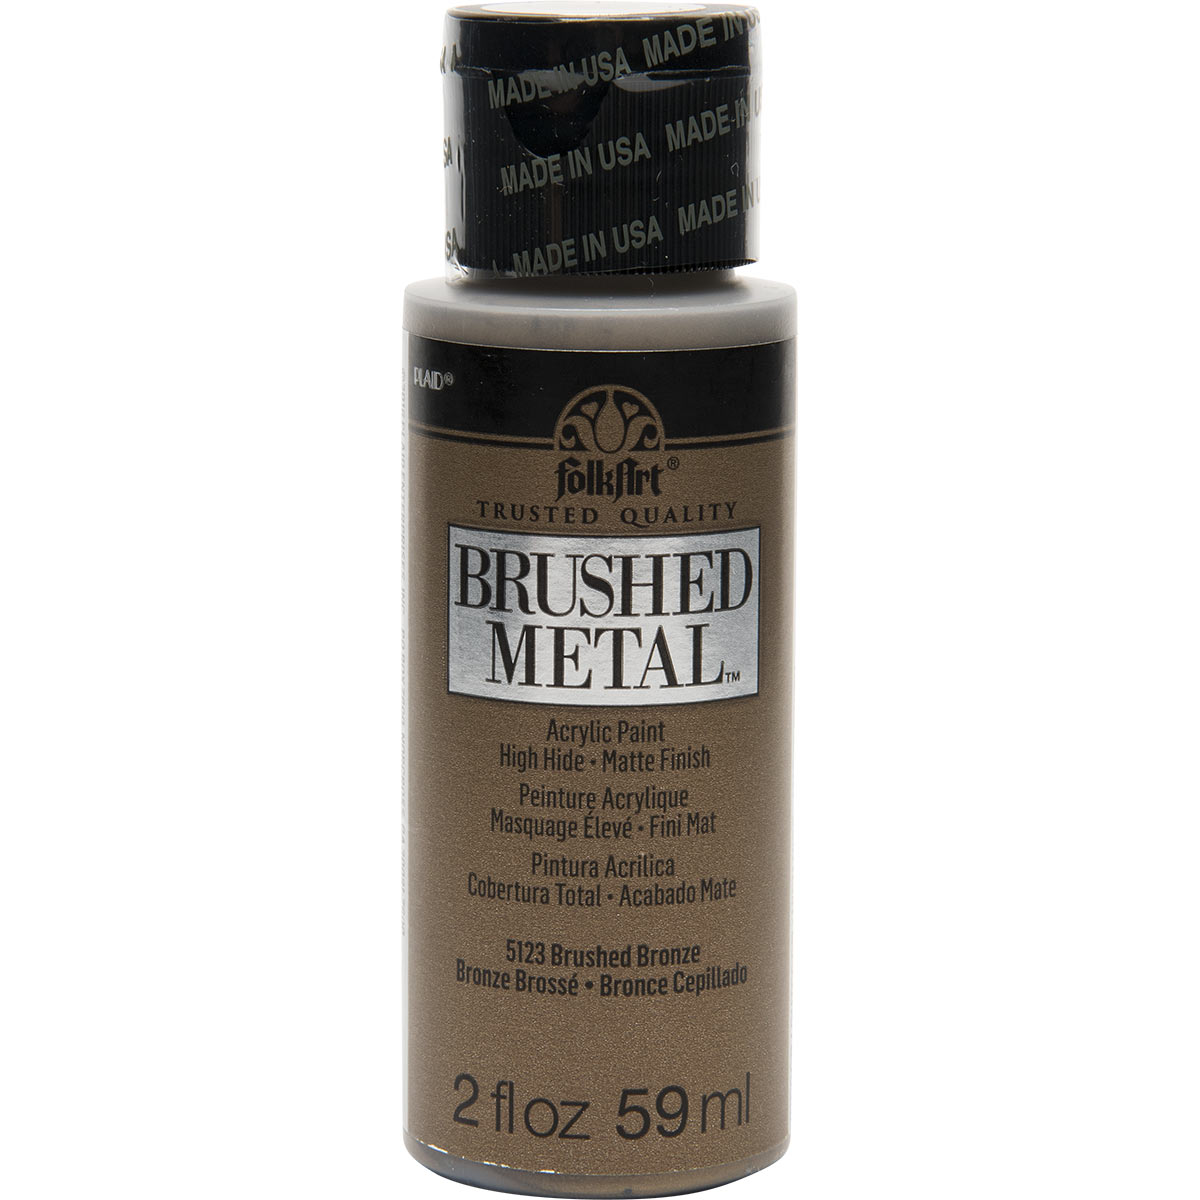 FolkArt ® Brushed Metal™ Acrylic Paint - Bronze, 2 oz. - 5123